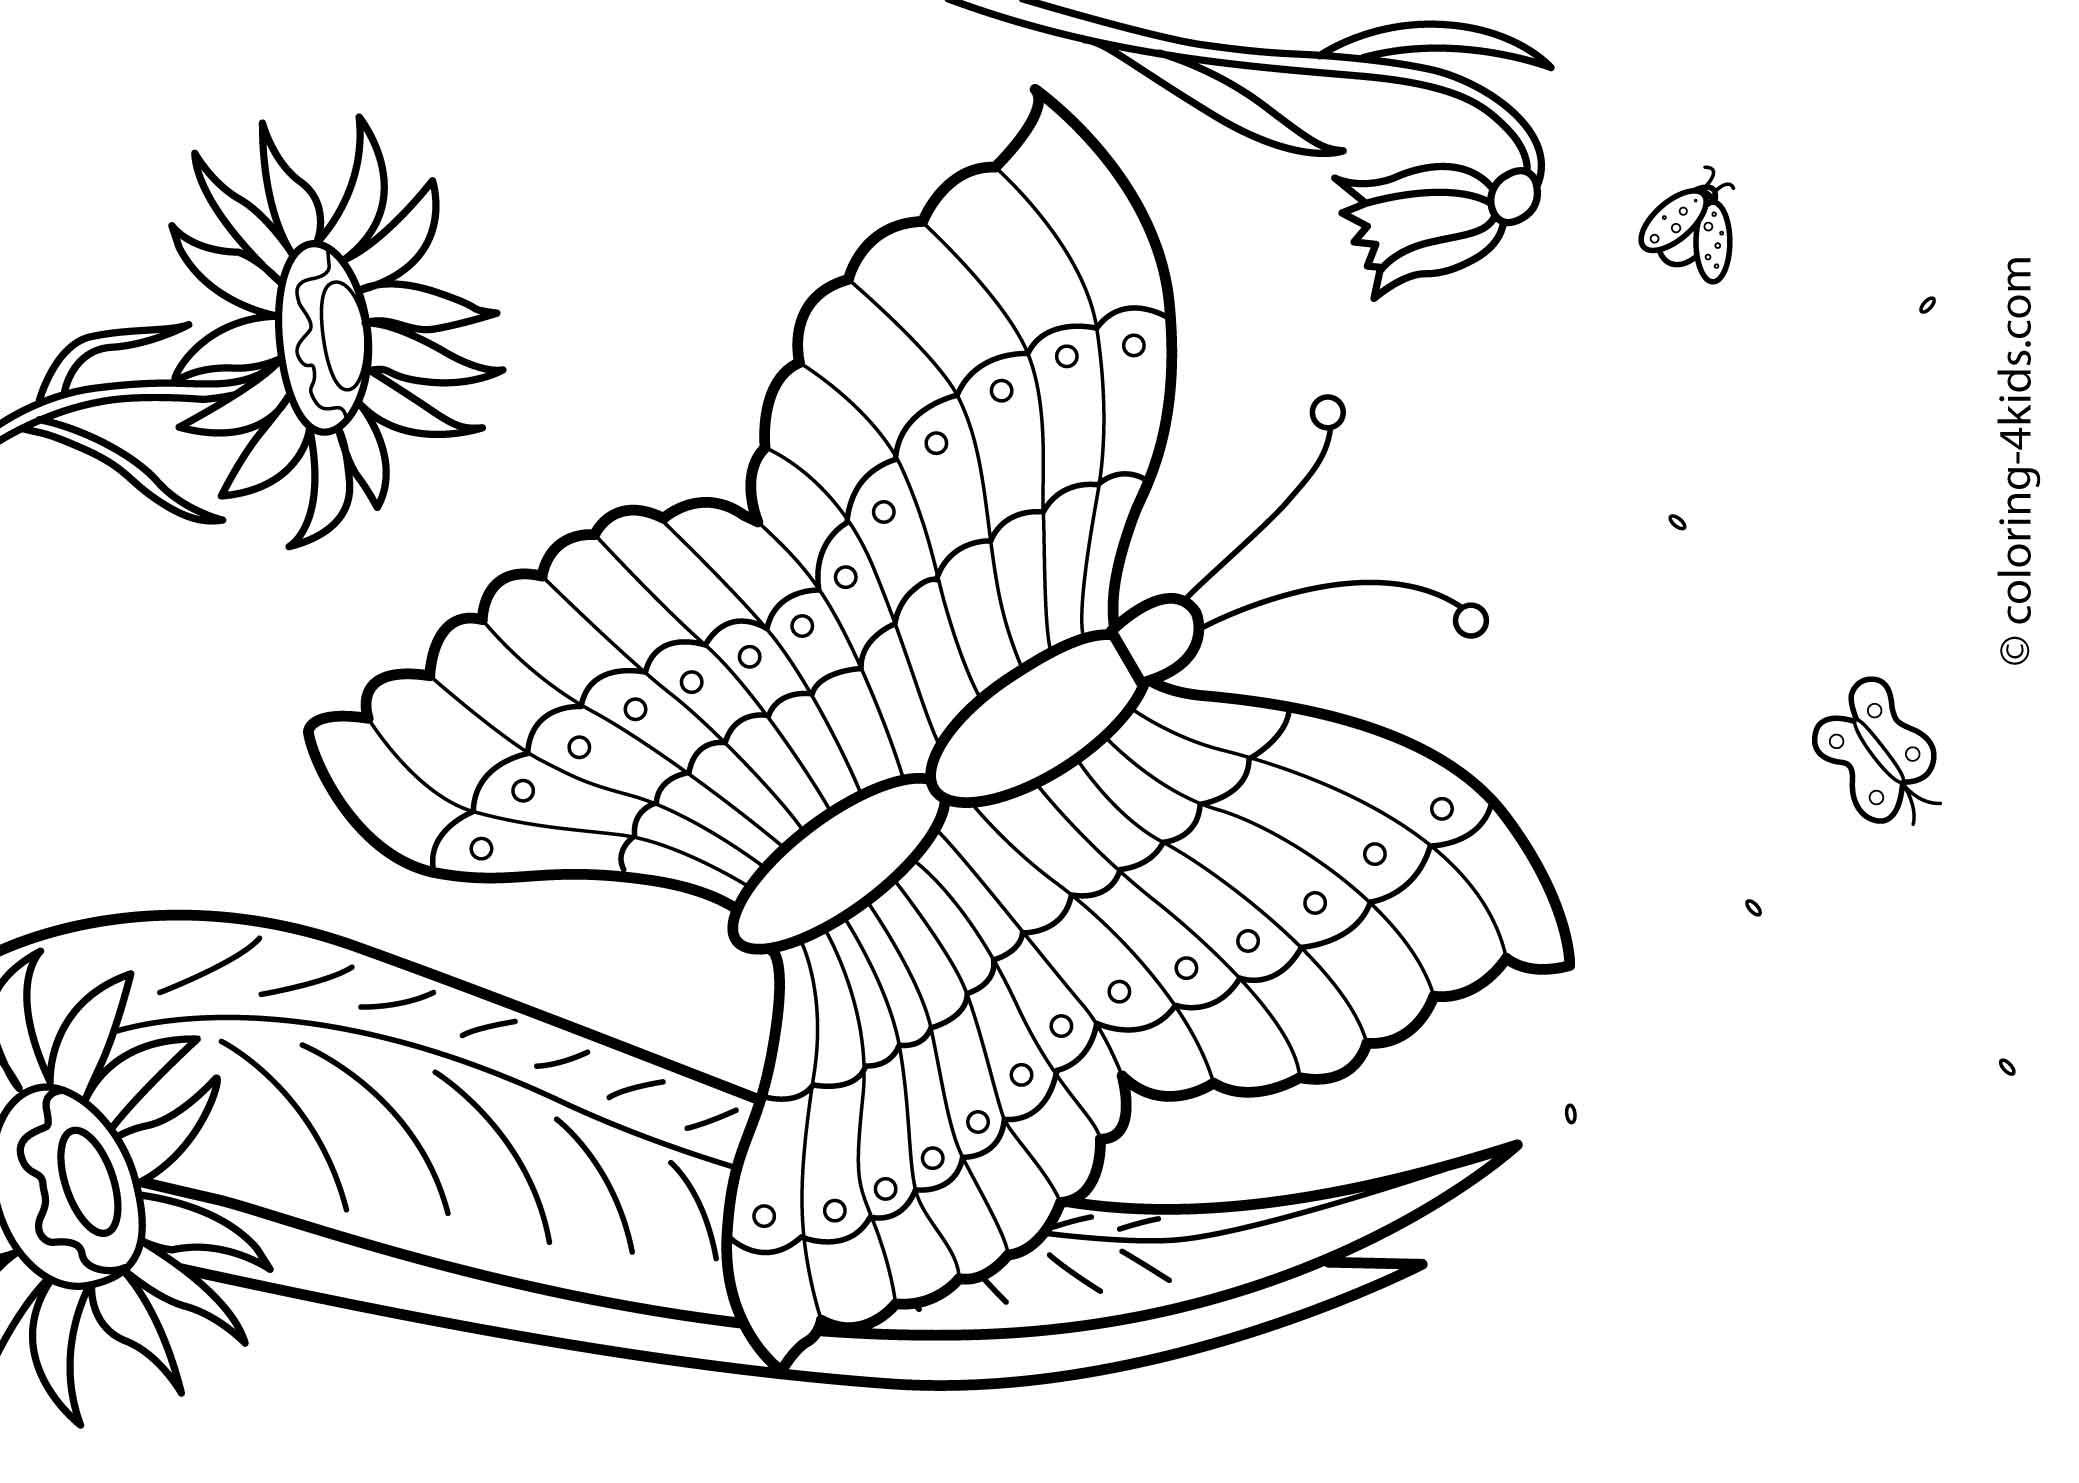 Best ideas about Summer Coloring Sheets For Kids . Save or Pin 27 Summer season coloring pages part 2 Now.